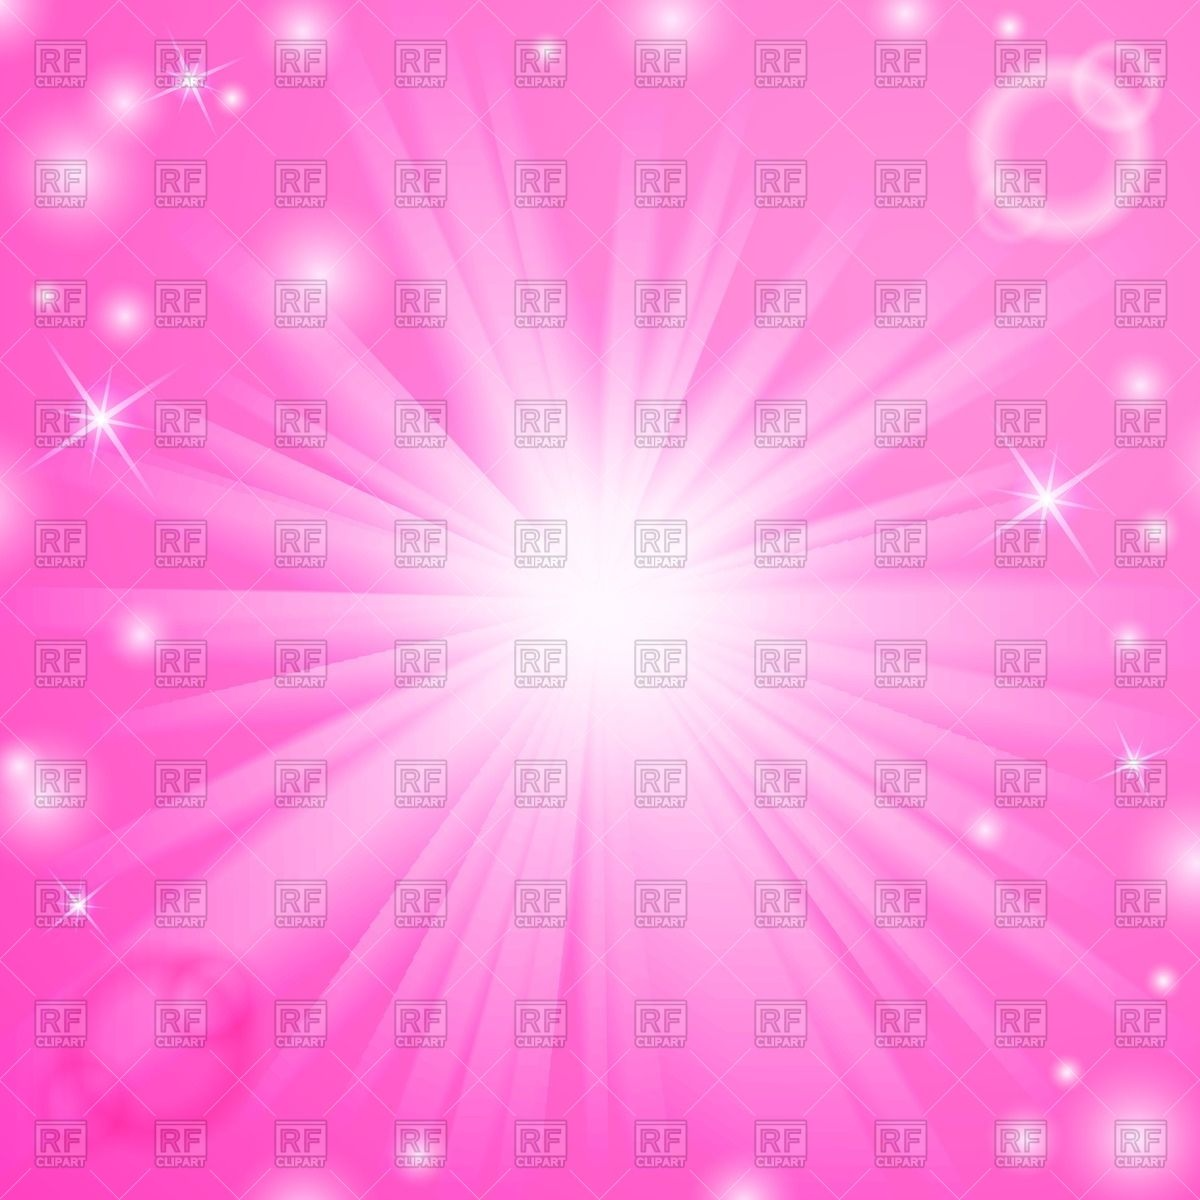 1200x1200 White Burst With Sparkles And Rays On Pink Background Vector Image